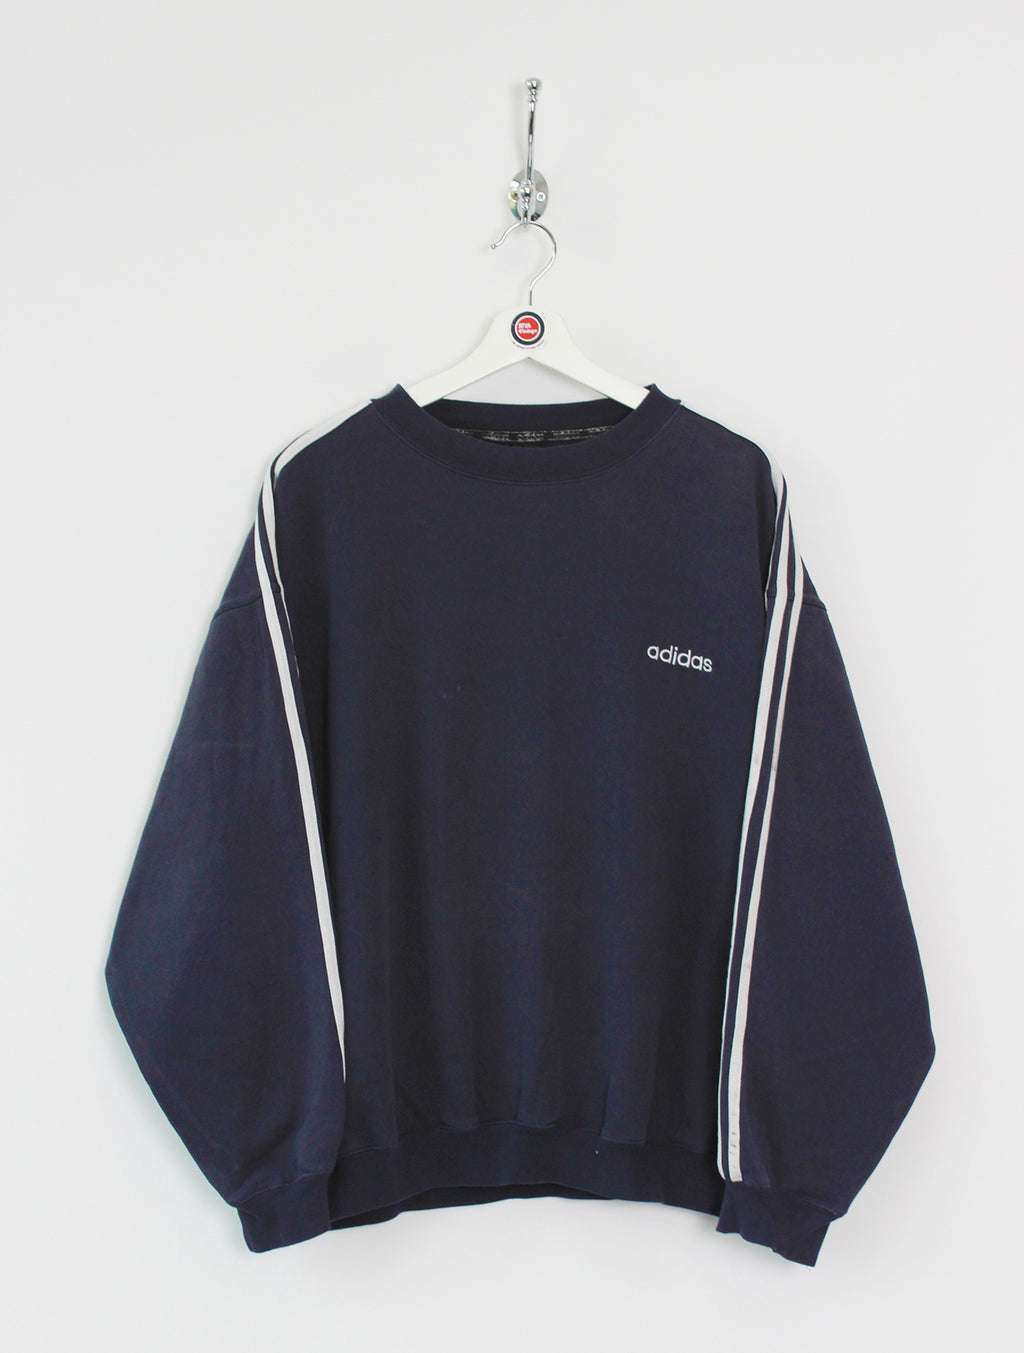 Adidas Sweatshirt Navy (XL)